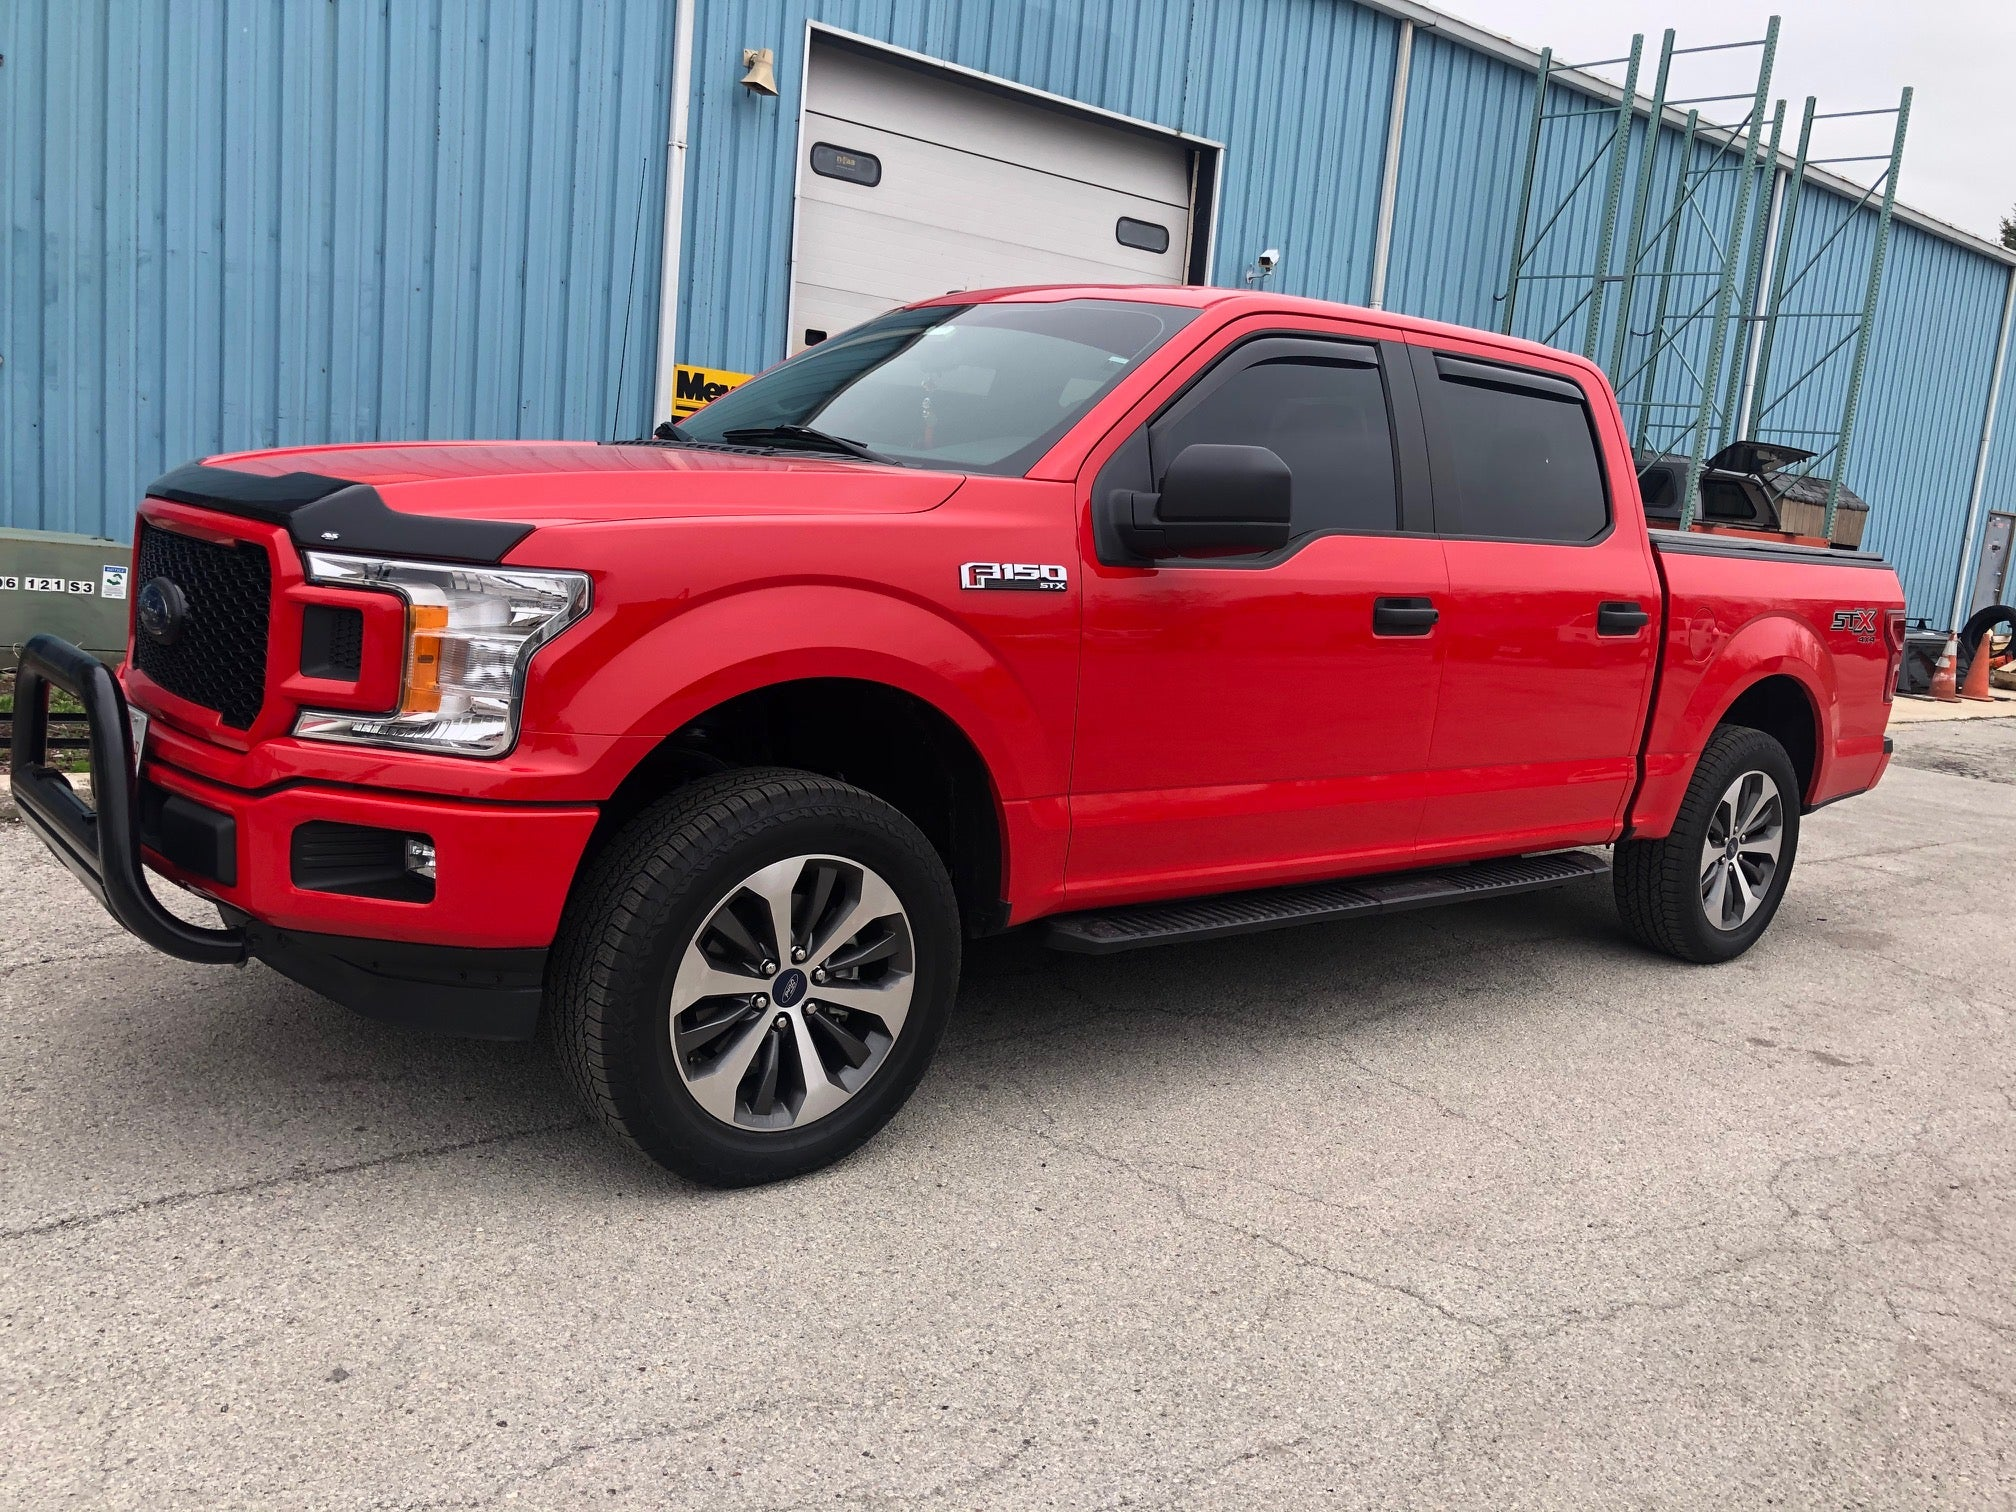 Red Ford F150 With Leveling Kit Installed at CPW Truck Stuff & Wheels